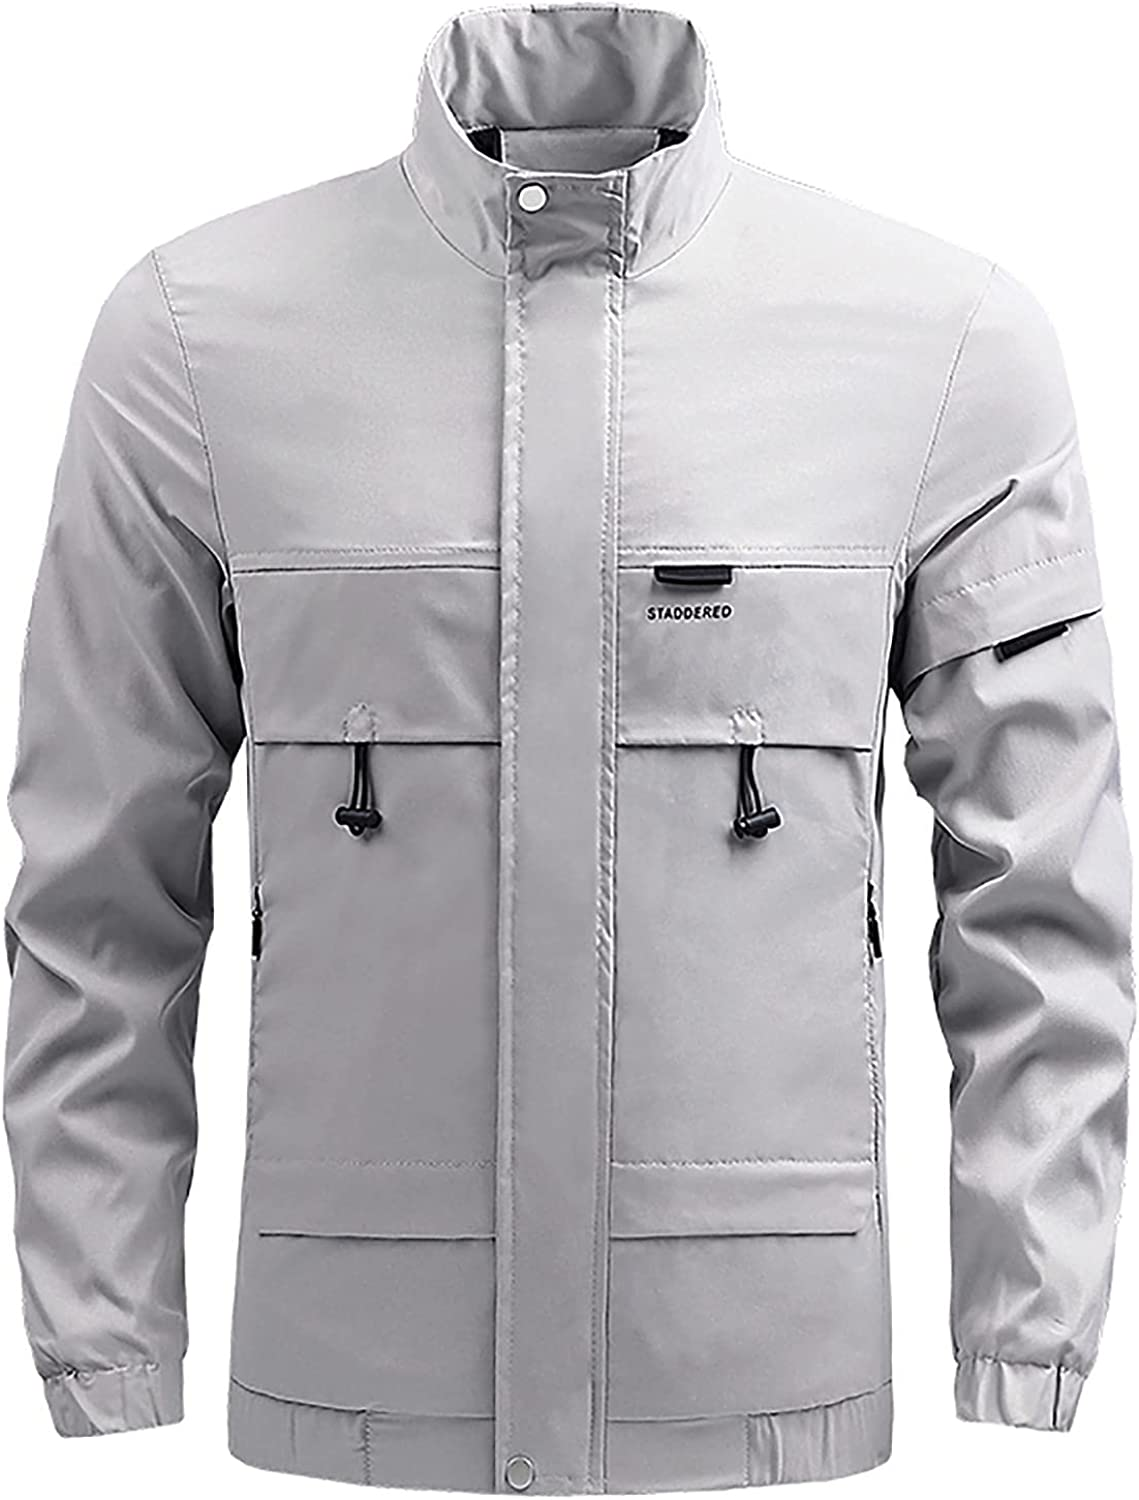 Men's Lightweight Shell Jackets Trend Coat Max 69% OFF Sports Jacket New mail order Outdoor